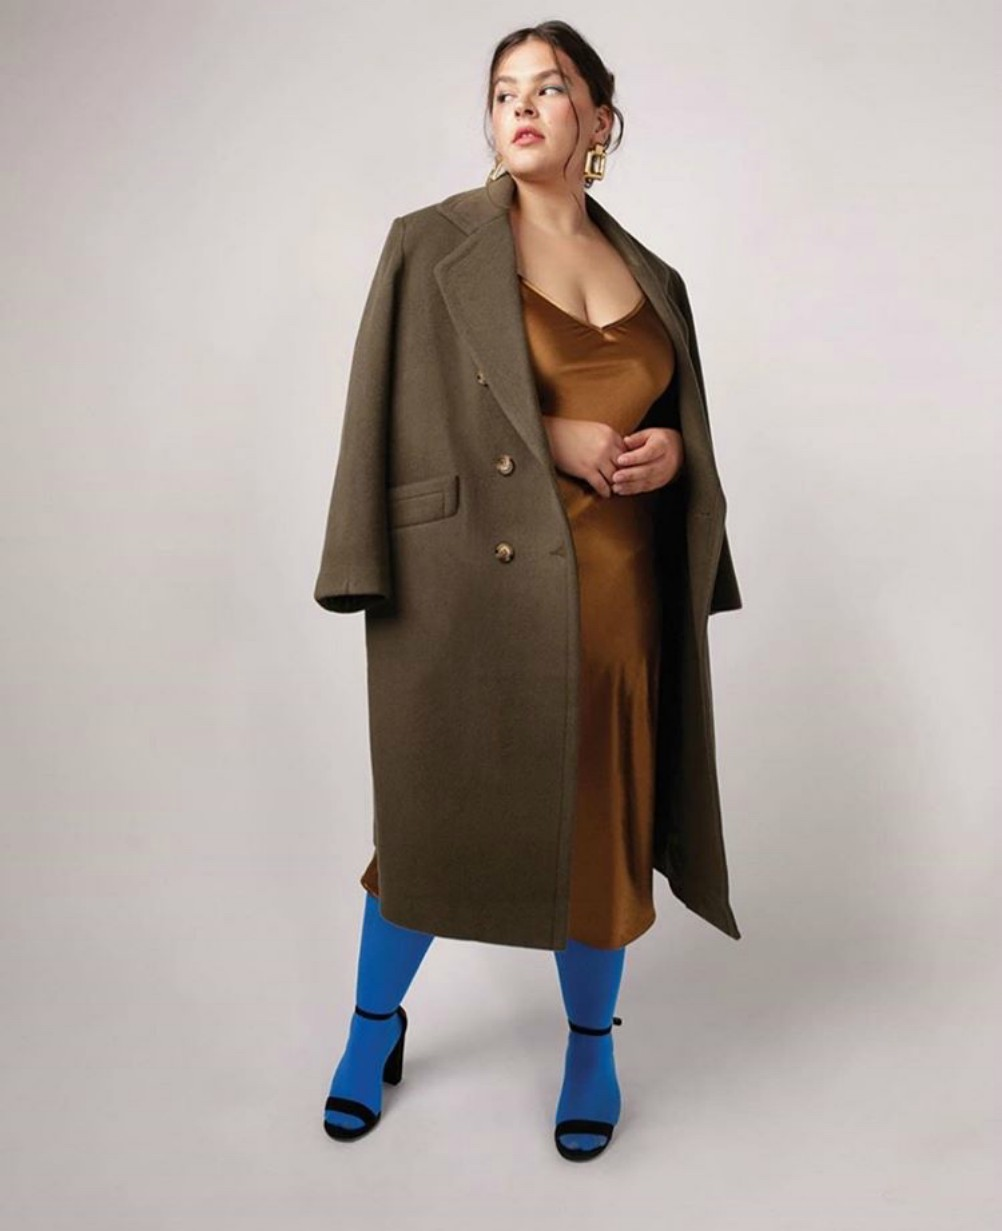 Legendary designer Cynthia Vincent launched sustainable L.A.-based label Baacal in 2019 for plus-size shoppers long ignored by fashion.